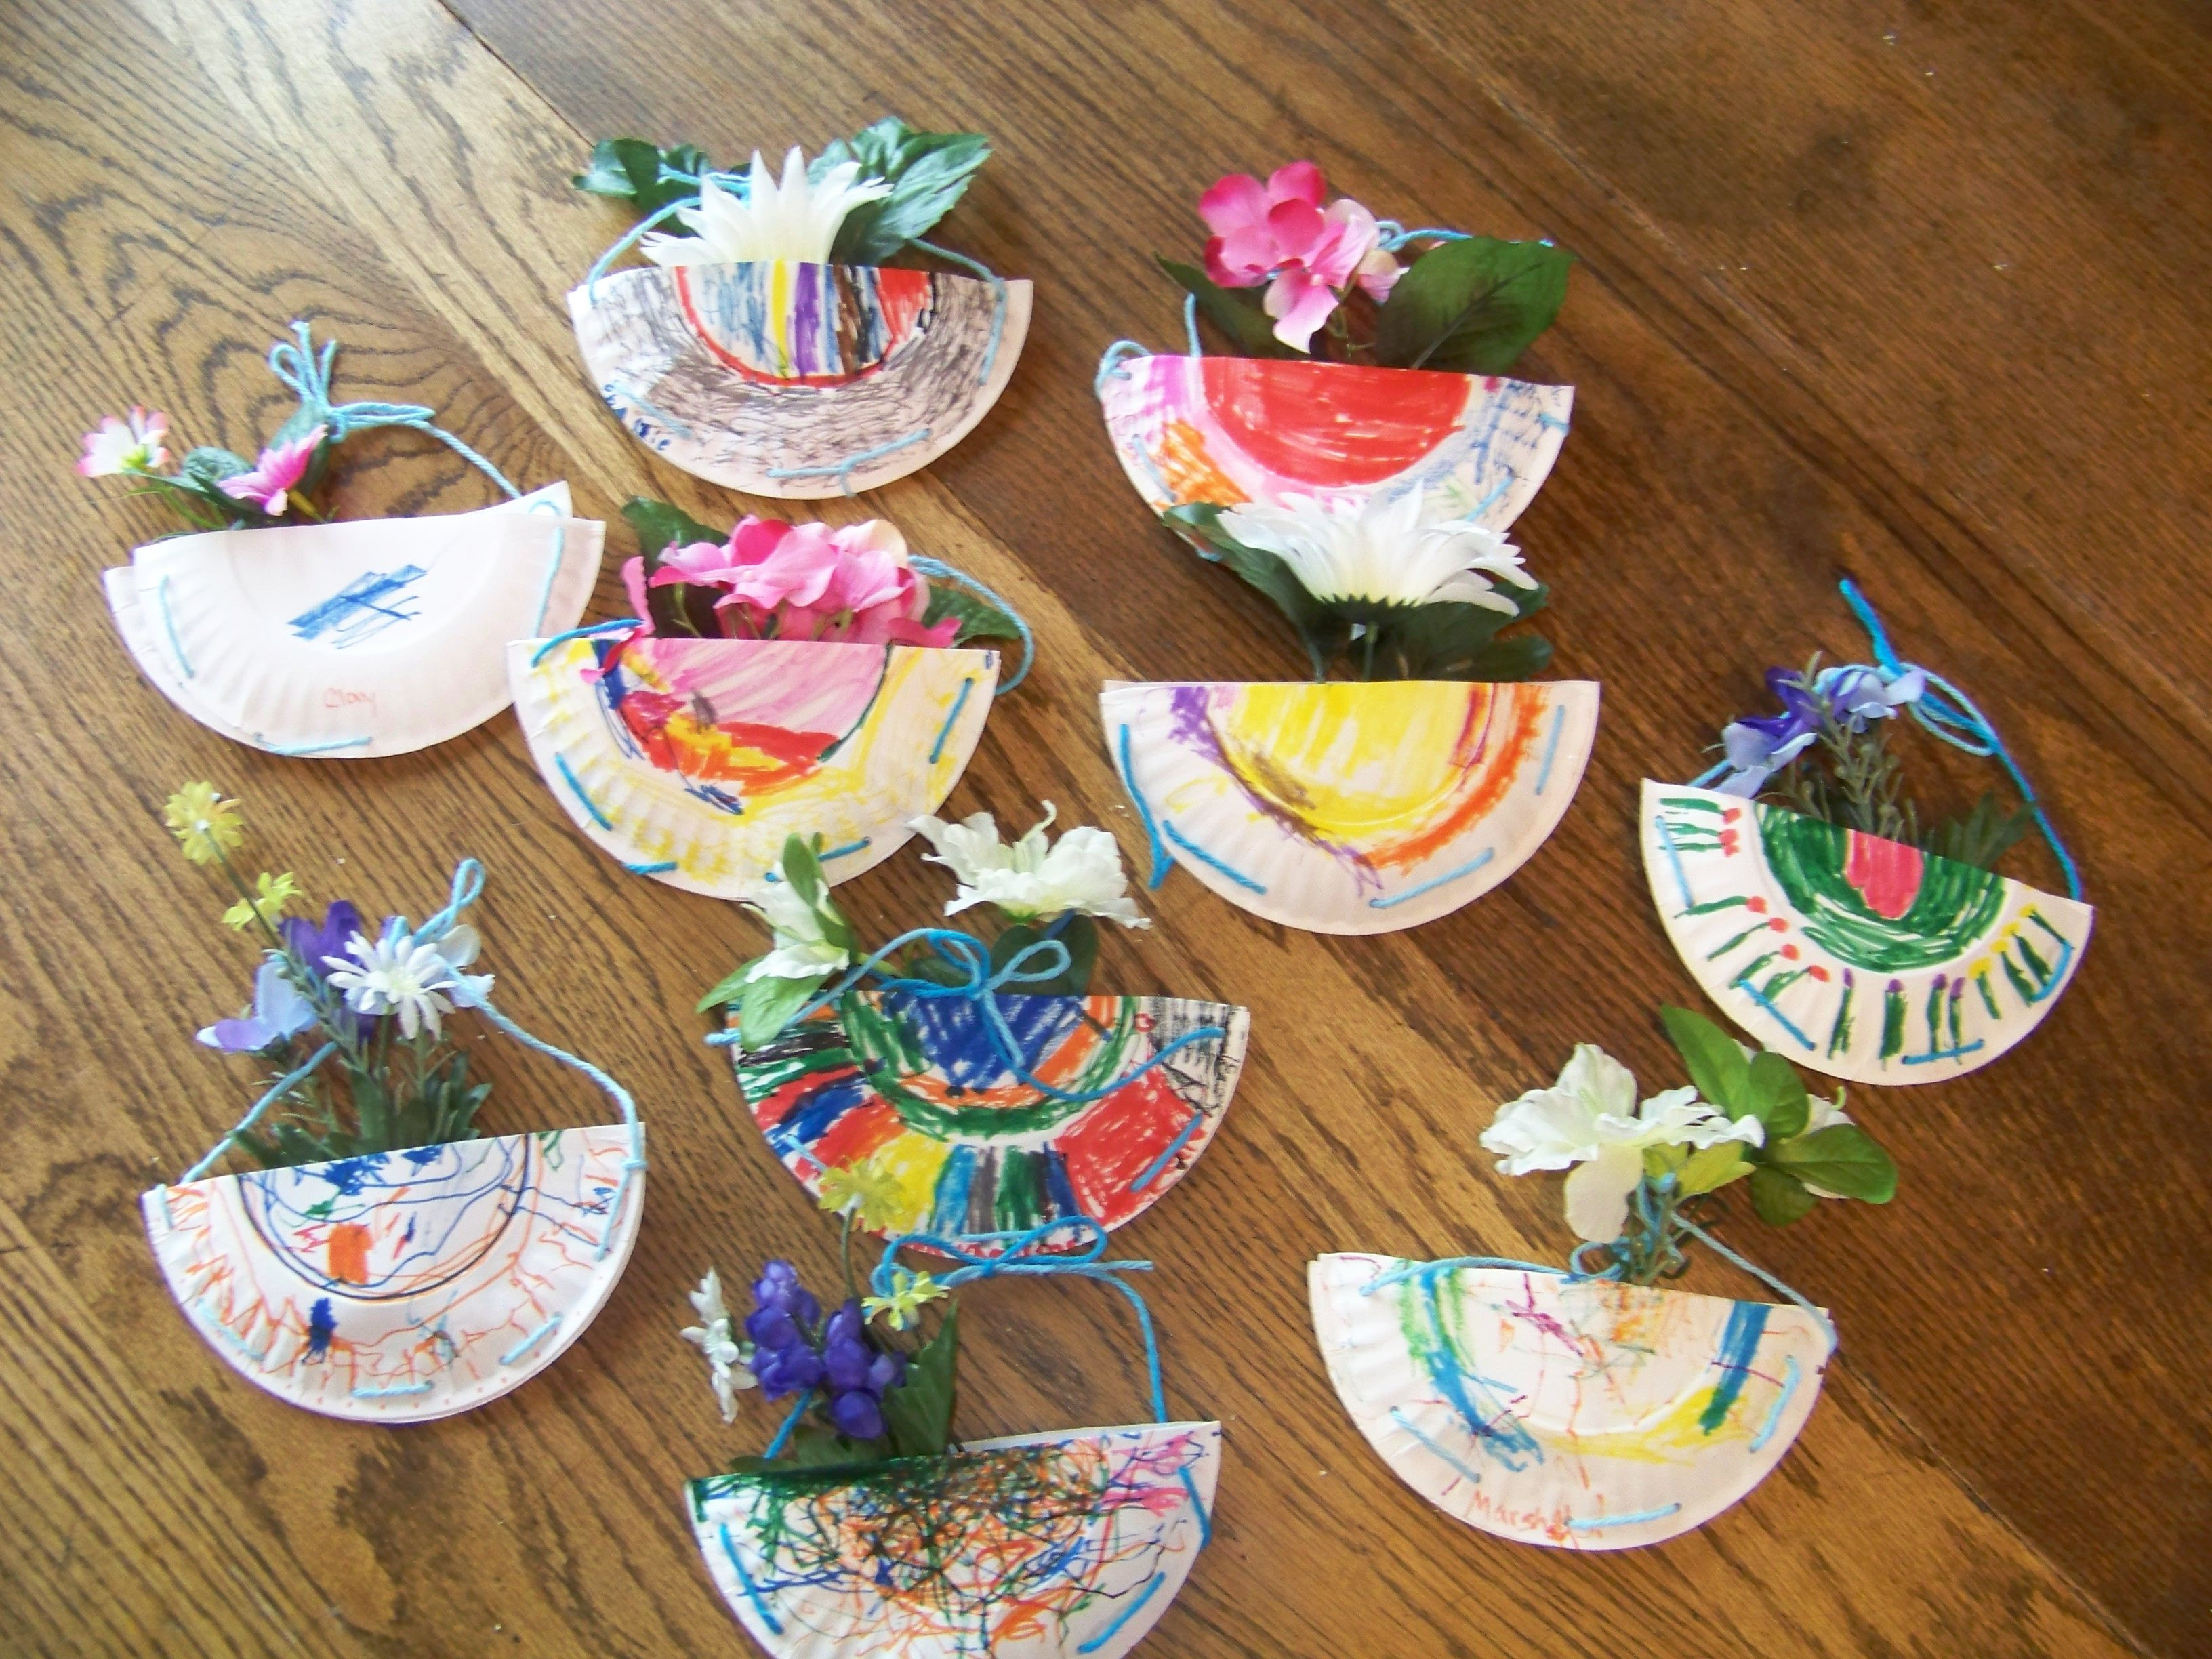 May Day Flower baskets kids craft. paper plate markers yarn tape old fake flowers. & May Day Flower baskets kids craft. paper plate markers yarn tape ...